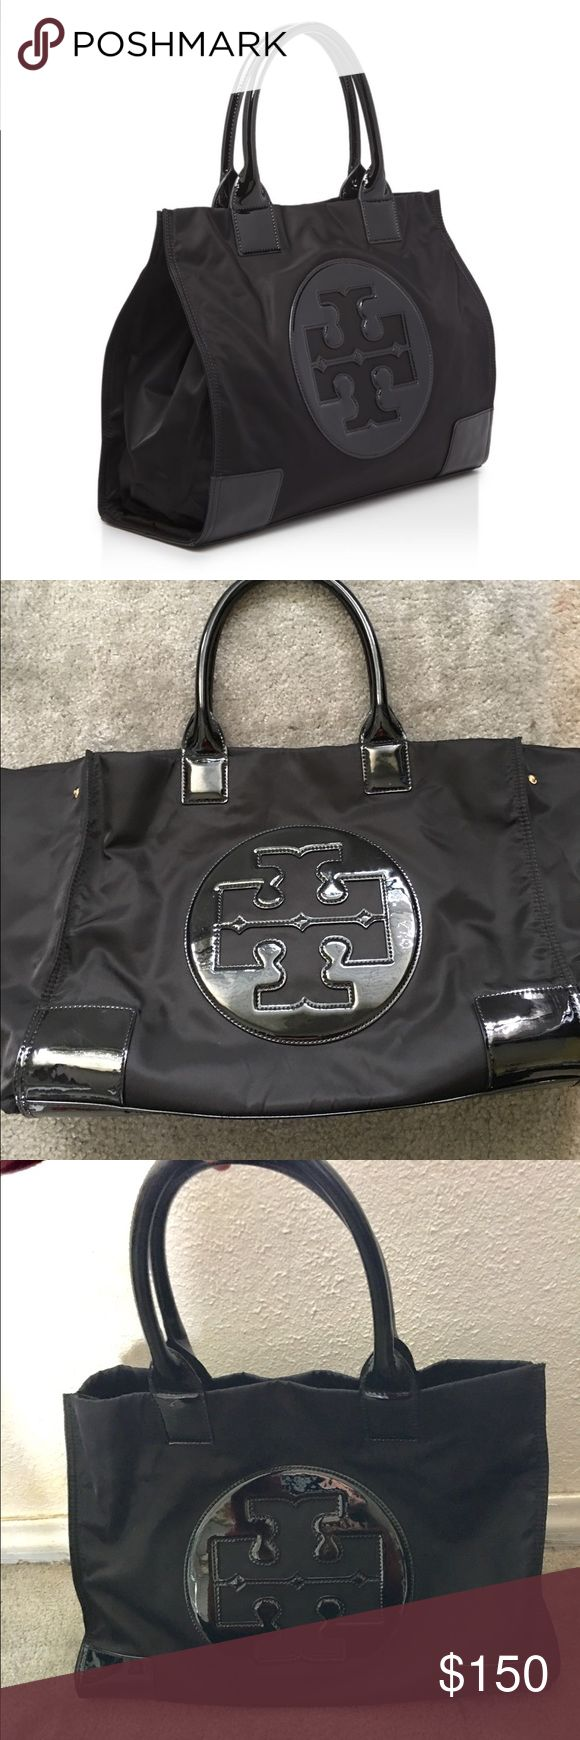 "Tory Butch Ella Nylon Tote Tory Burch Tote Bag | Color: Black | Oversized nylon Tote Bag featuring the Tory Burch signature logo | Double handles | Magnetic snap closure | Expandable side gussets with snap closures | 16""W x 6.5""D x 13""H ; 7"" Handle drop 